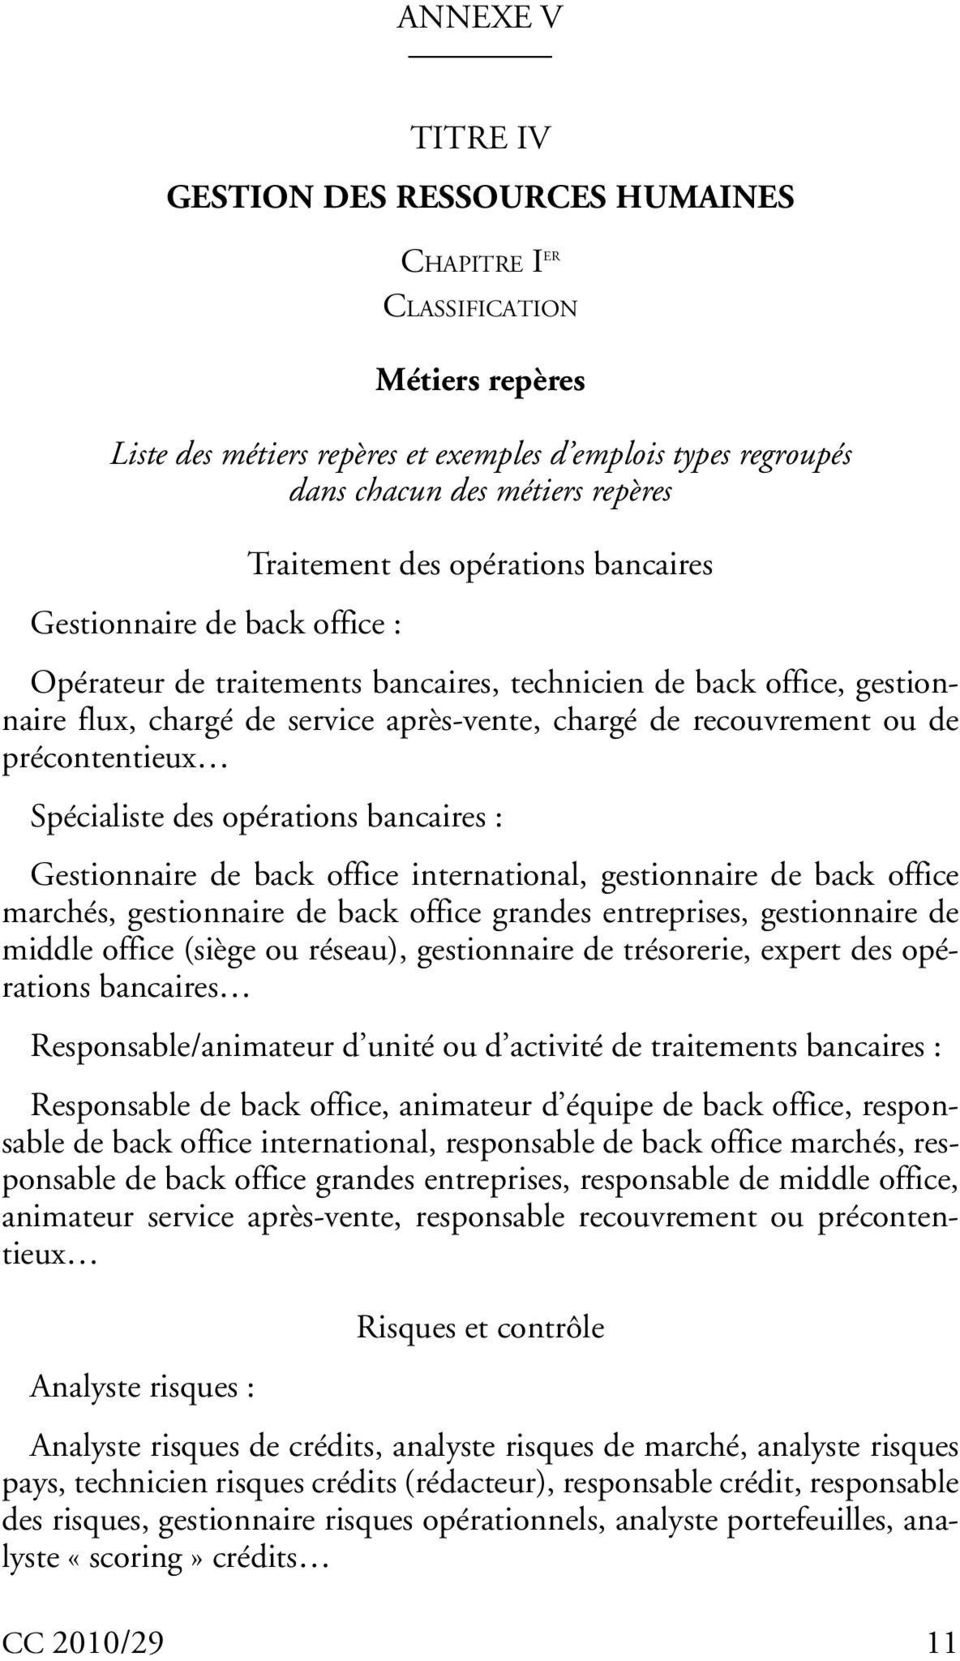 recouvrement ou de précontentieux Spécialiste des opérations bancaires : Gestionnaire de back office international, gestionnaire de back office marchés, gestionnaire de back office grandes